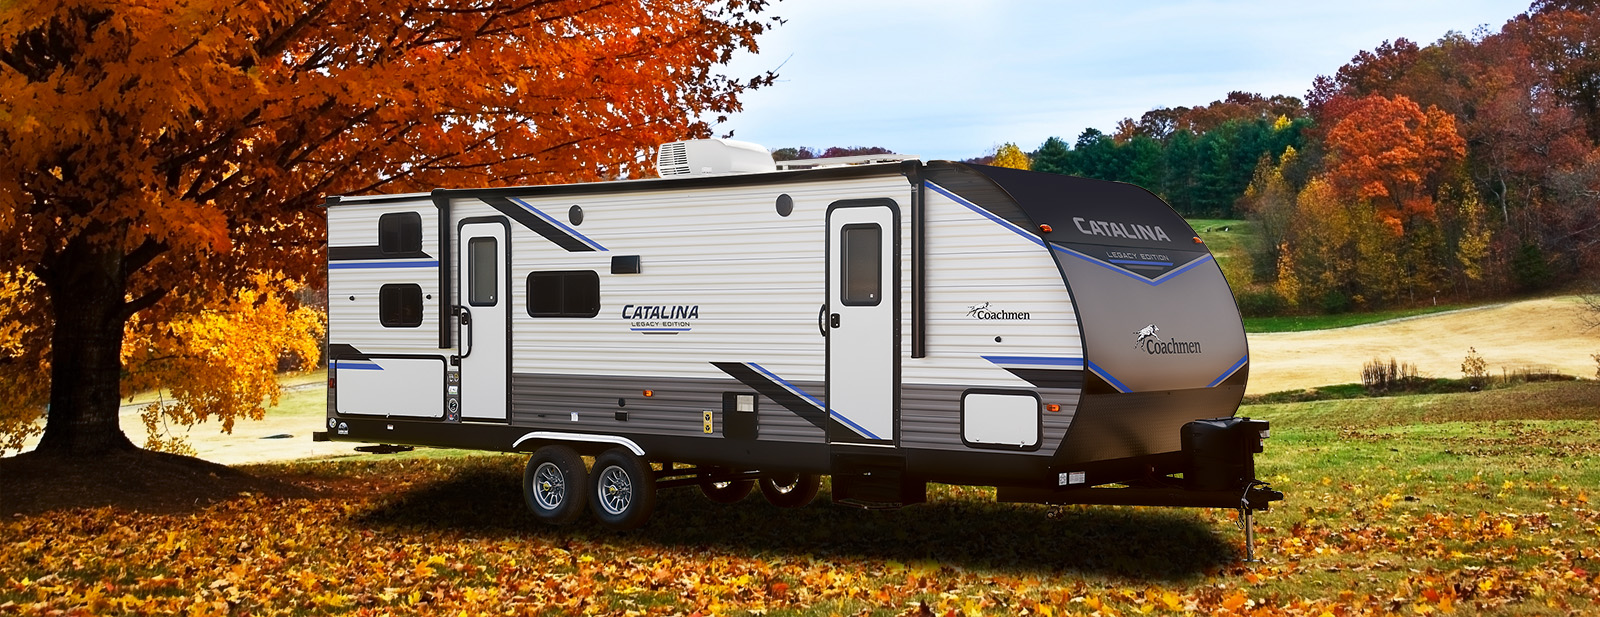 Catalina Trailer Park >> 2016 Coachmen Catalina Floorplans And Layouts Forest River